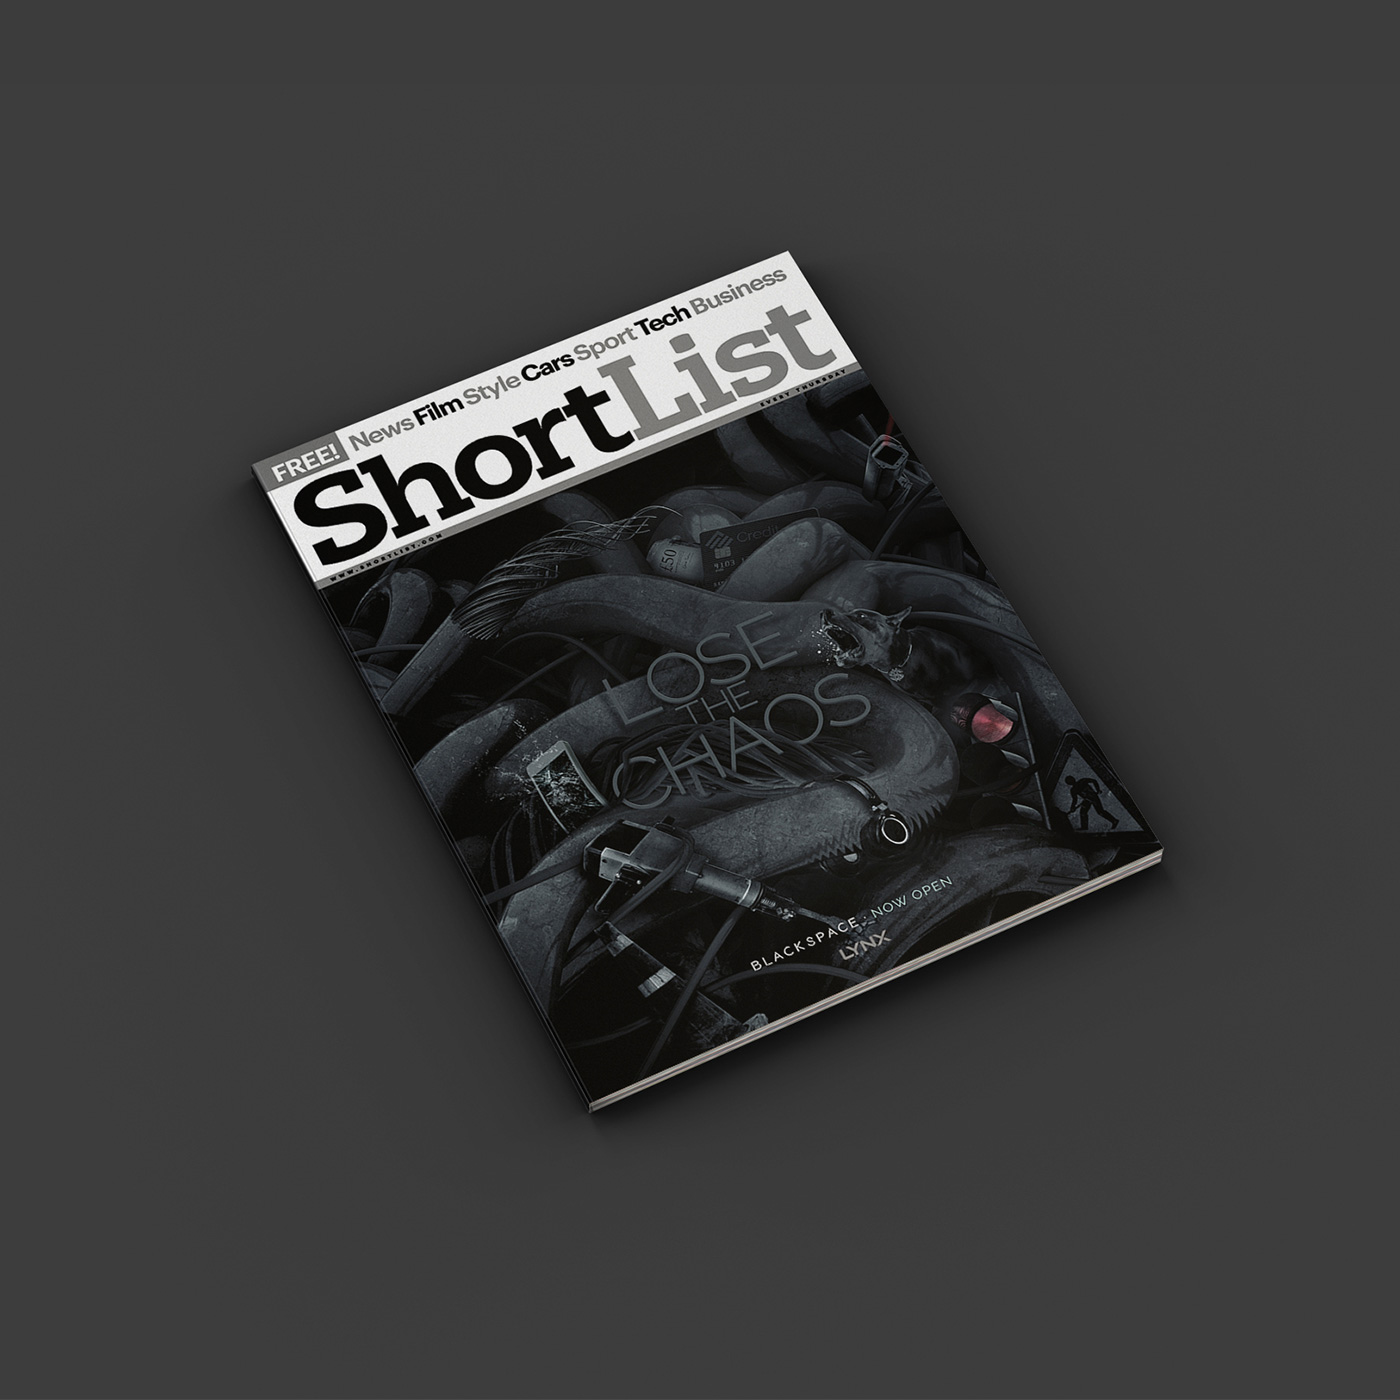 Lynx-Shortlist-magazine-visual